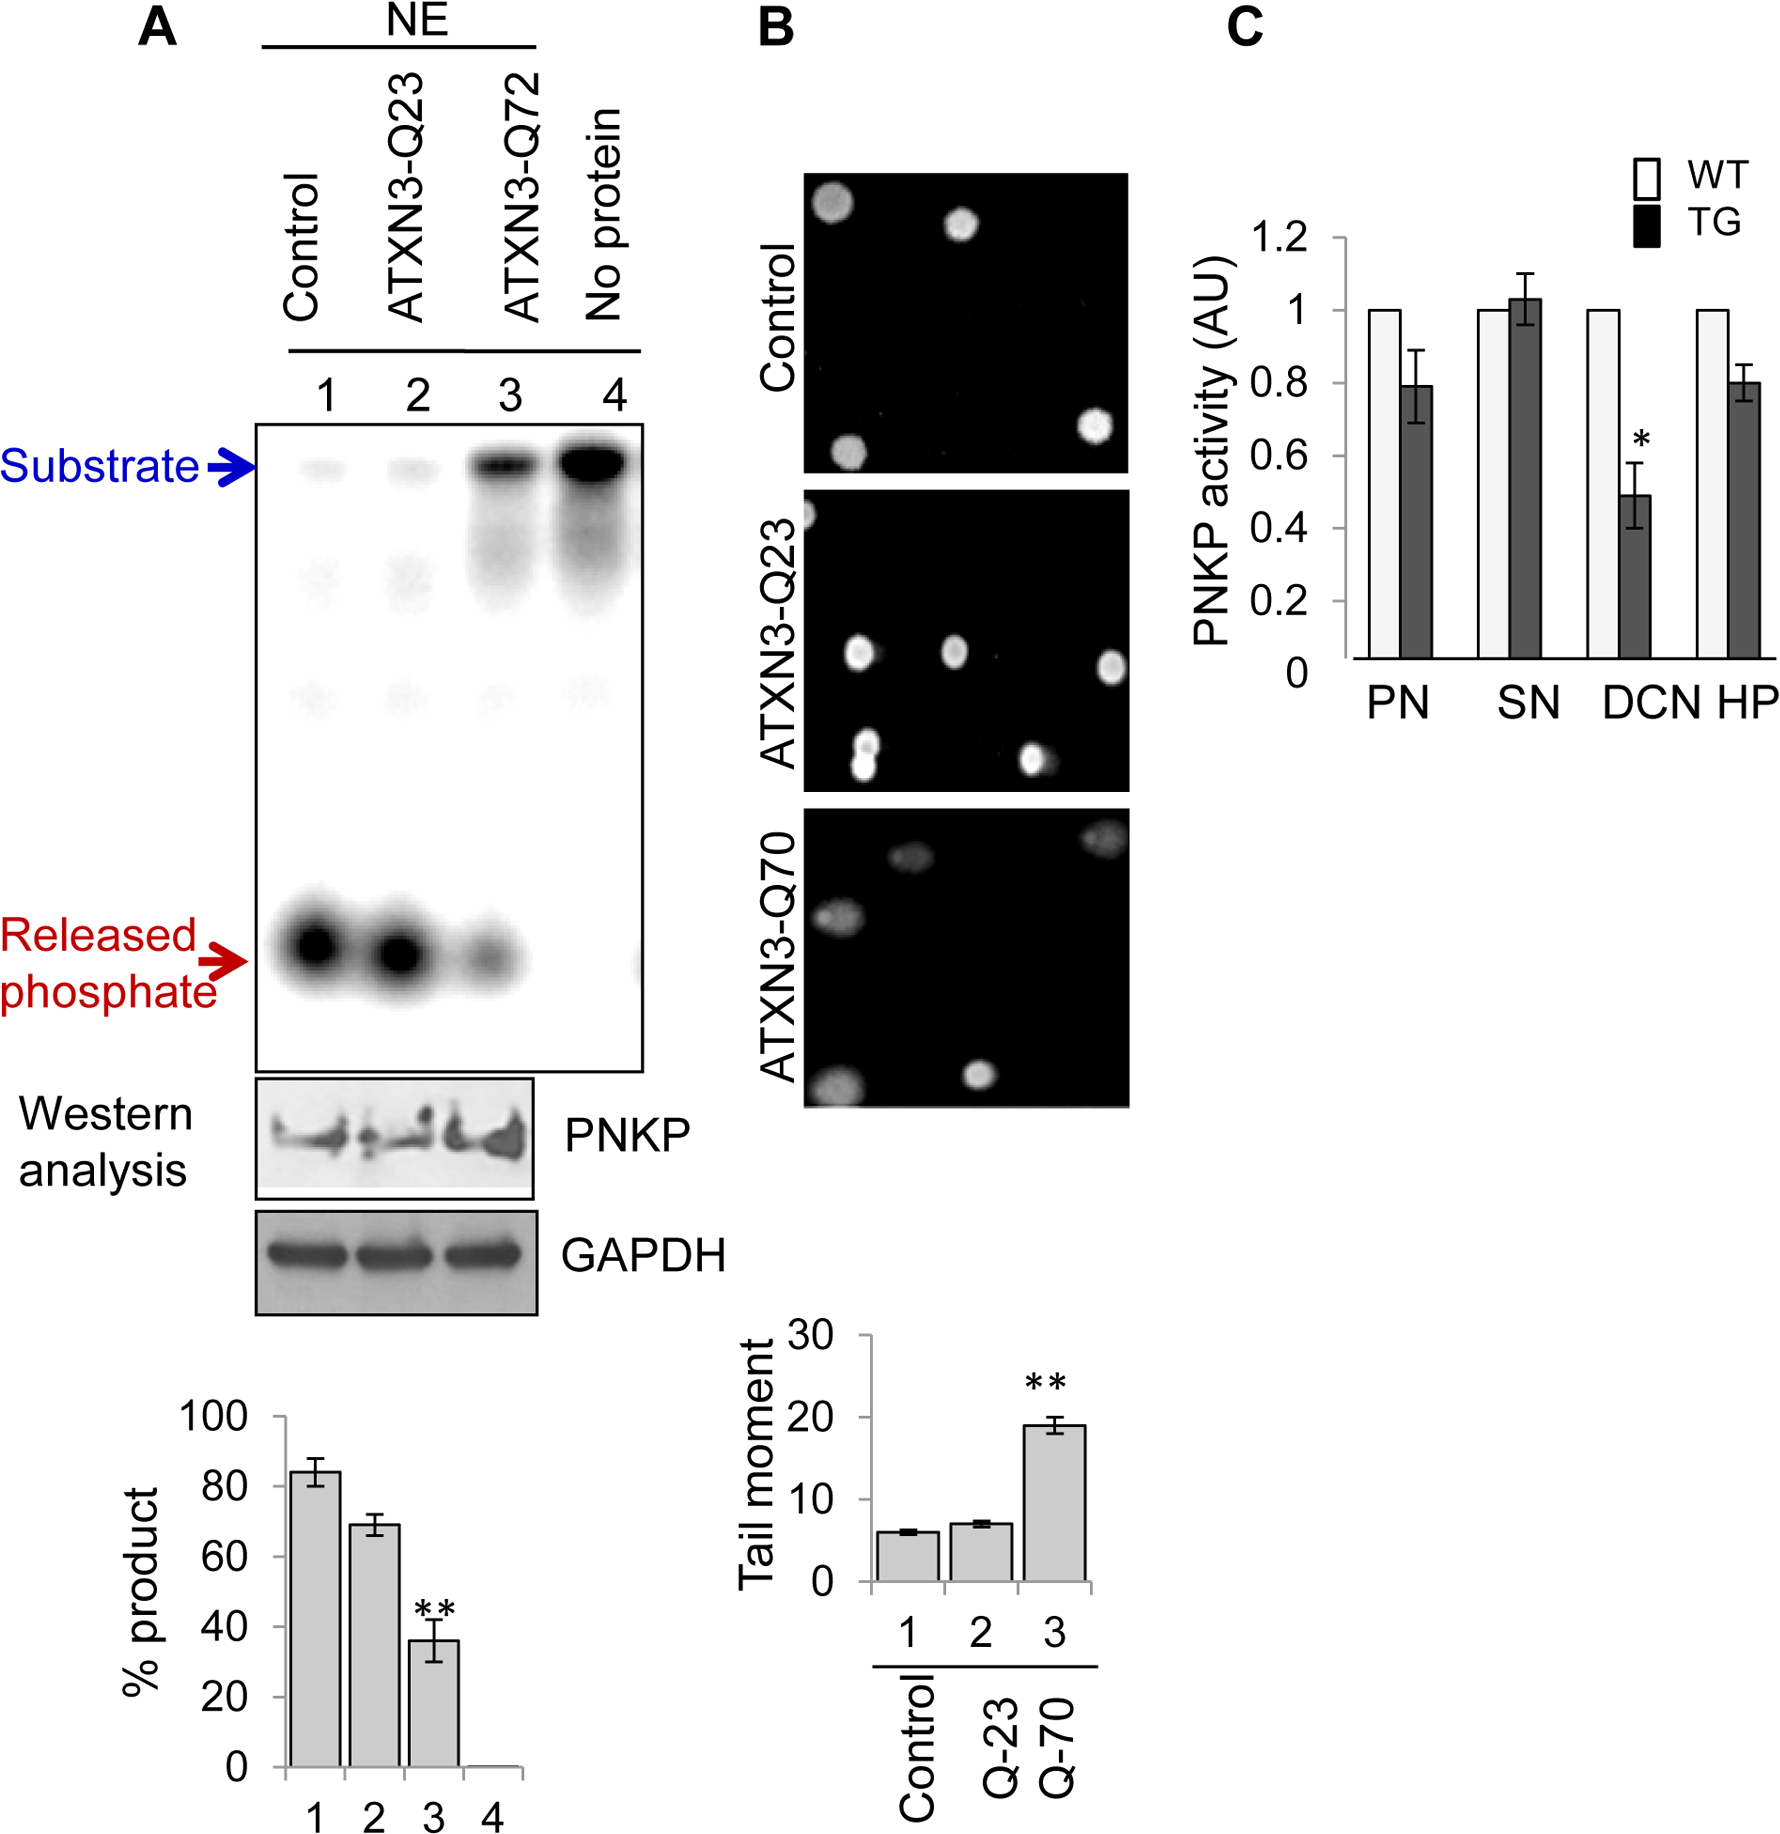 Decreased 3'-phosphatase activity in nuclear extracts from mutant ATXN3-expressing cells, and from SCA3 mouse brain regions.